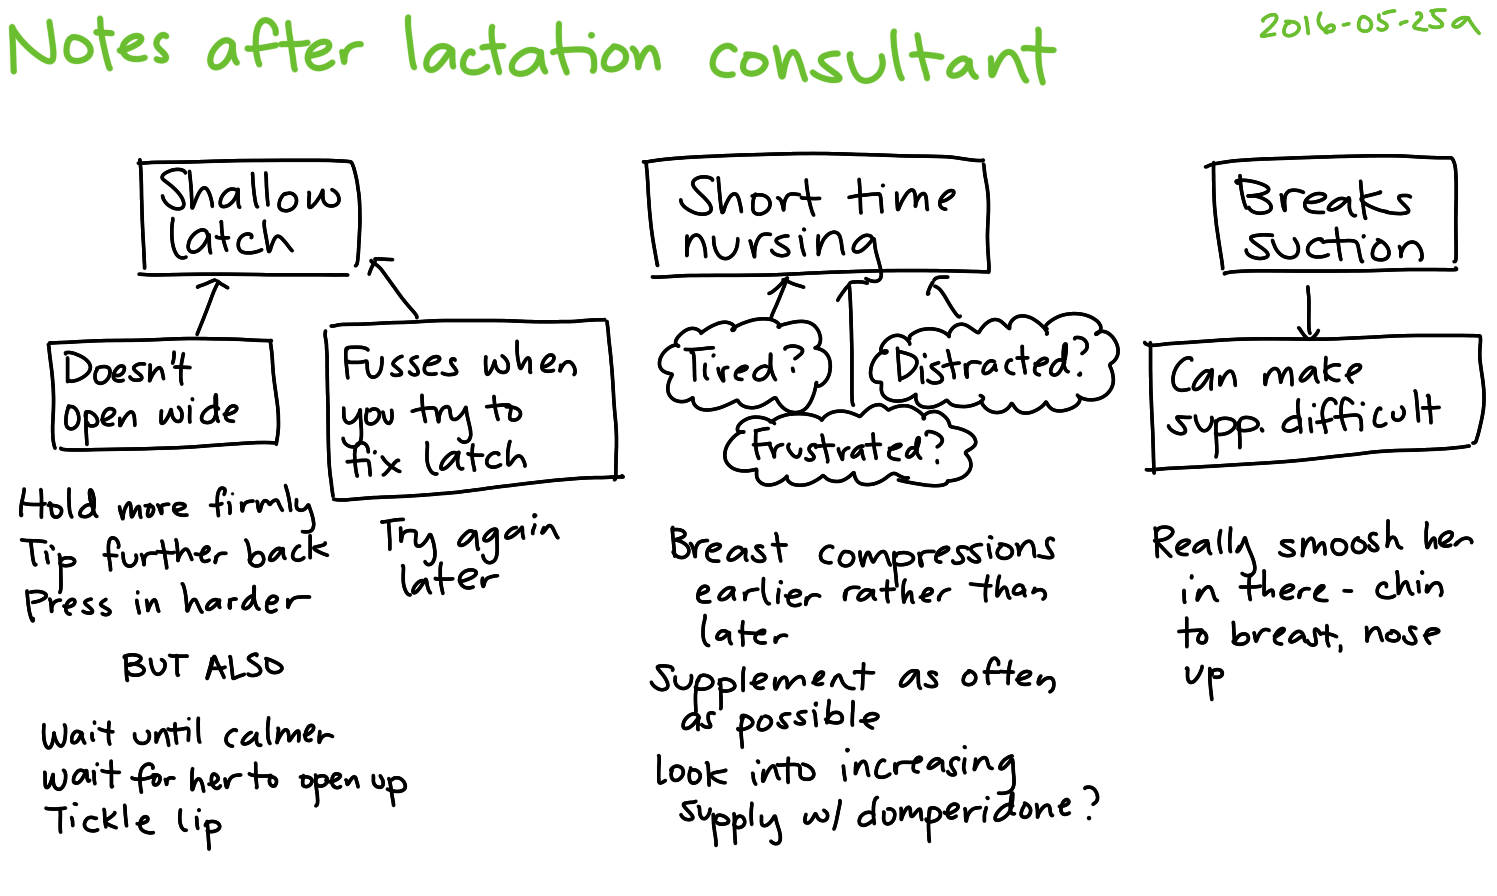 2016-05-25a Notes after lactation consultant -- index card #breastfeeding.png